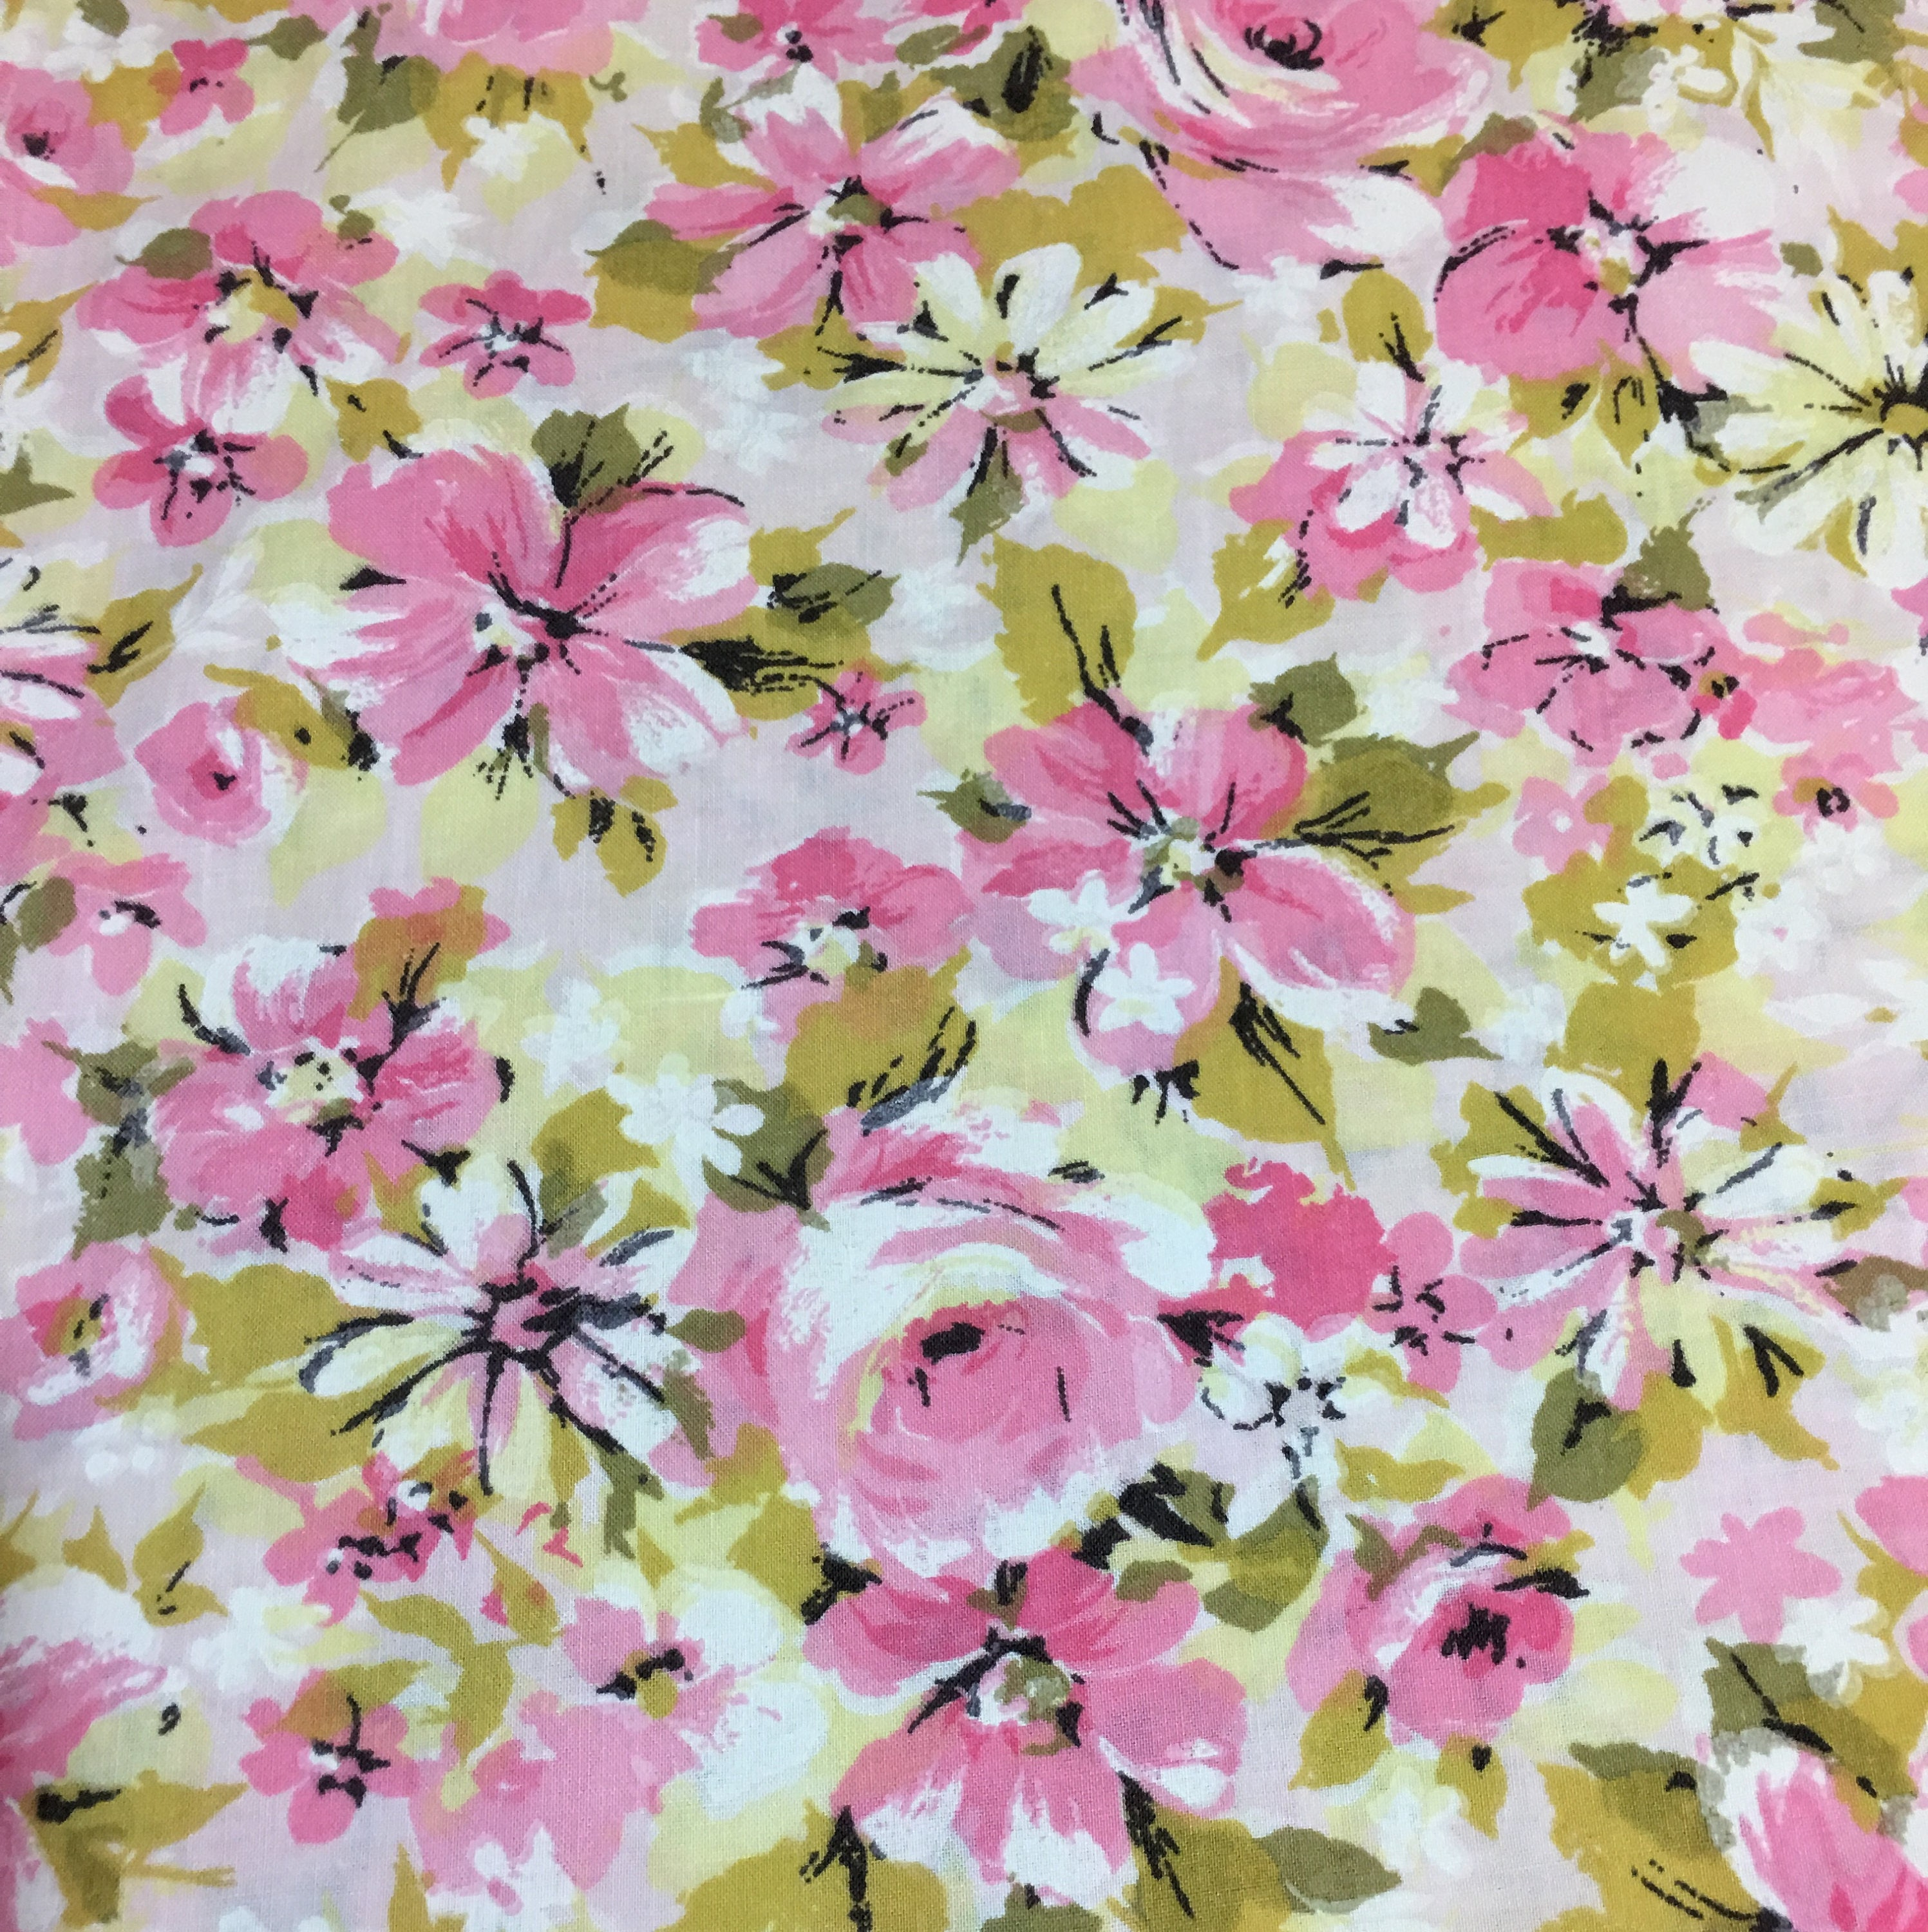 Vintage Pink Floral Muslin Full Flat Sheet Pink Green Gold Flowers